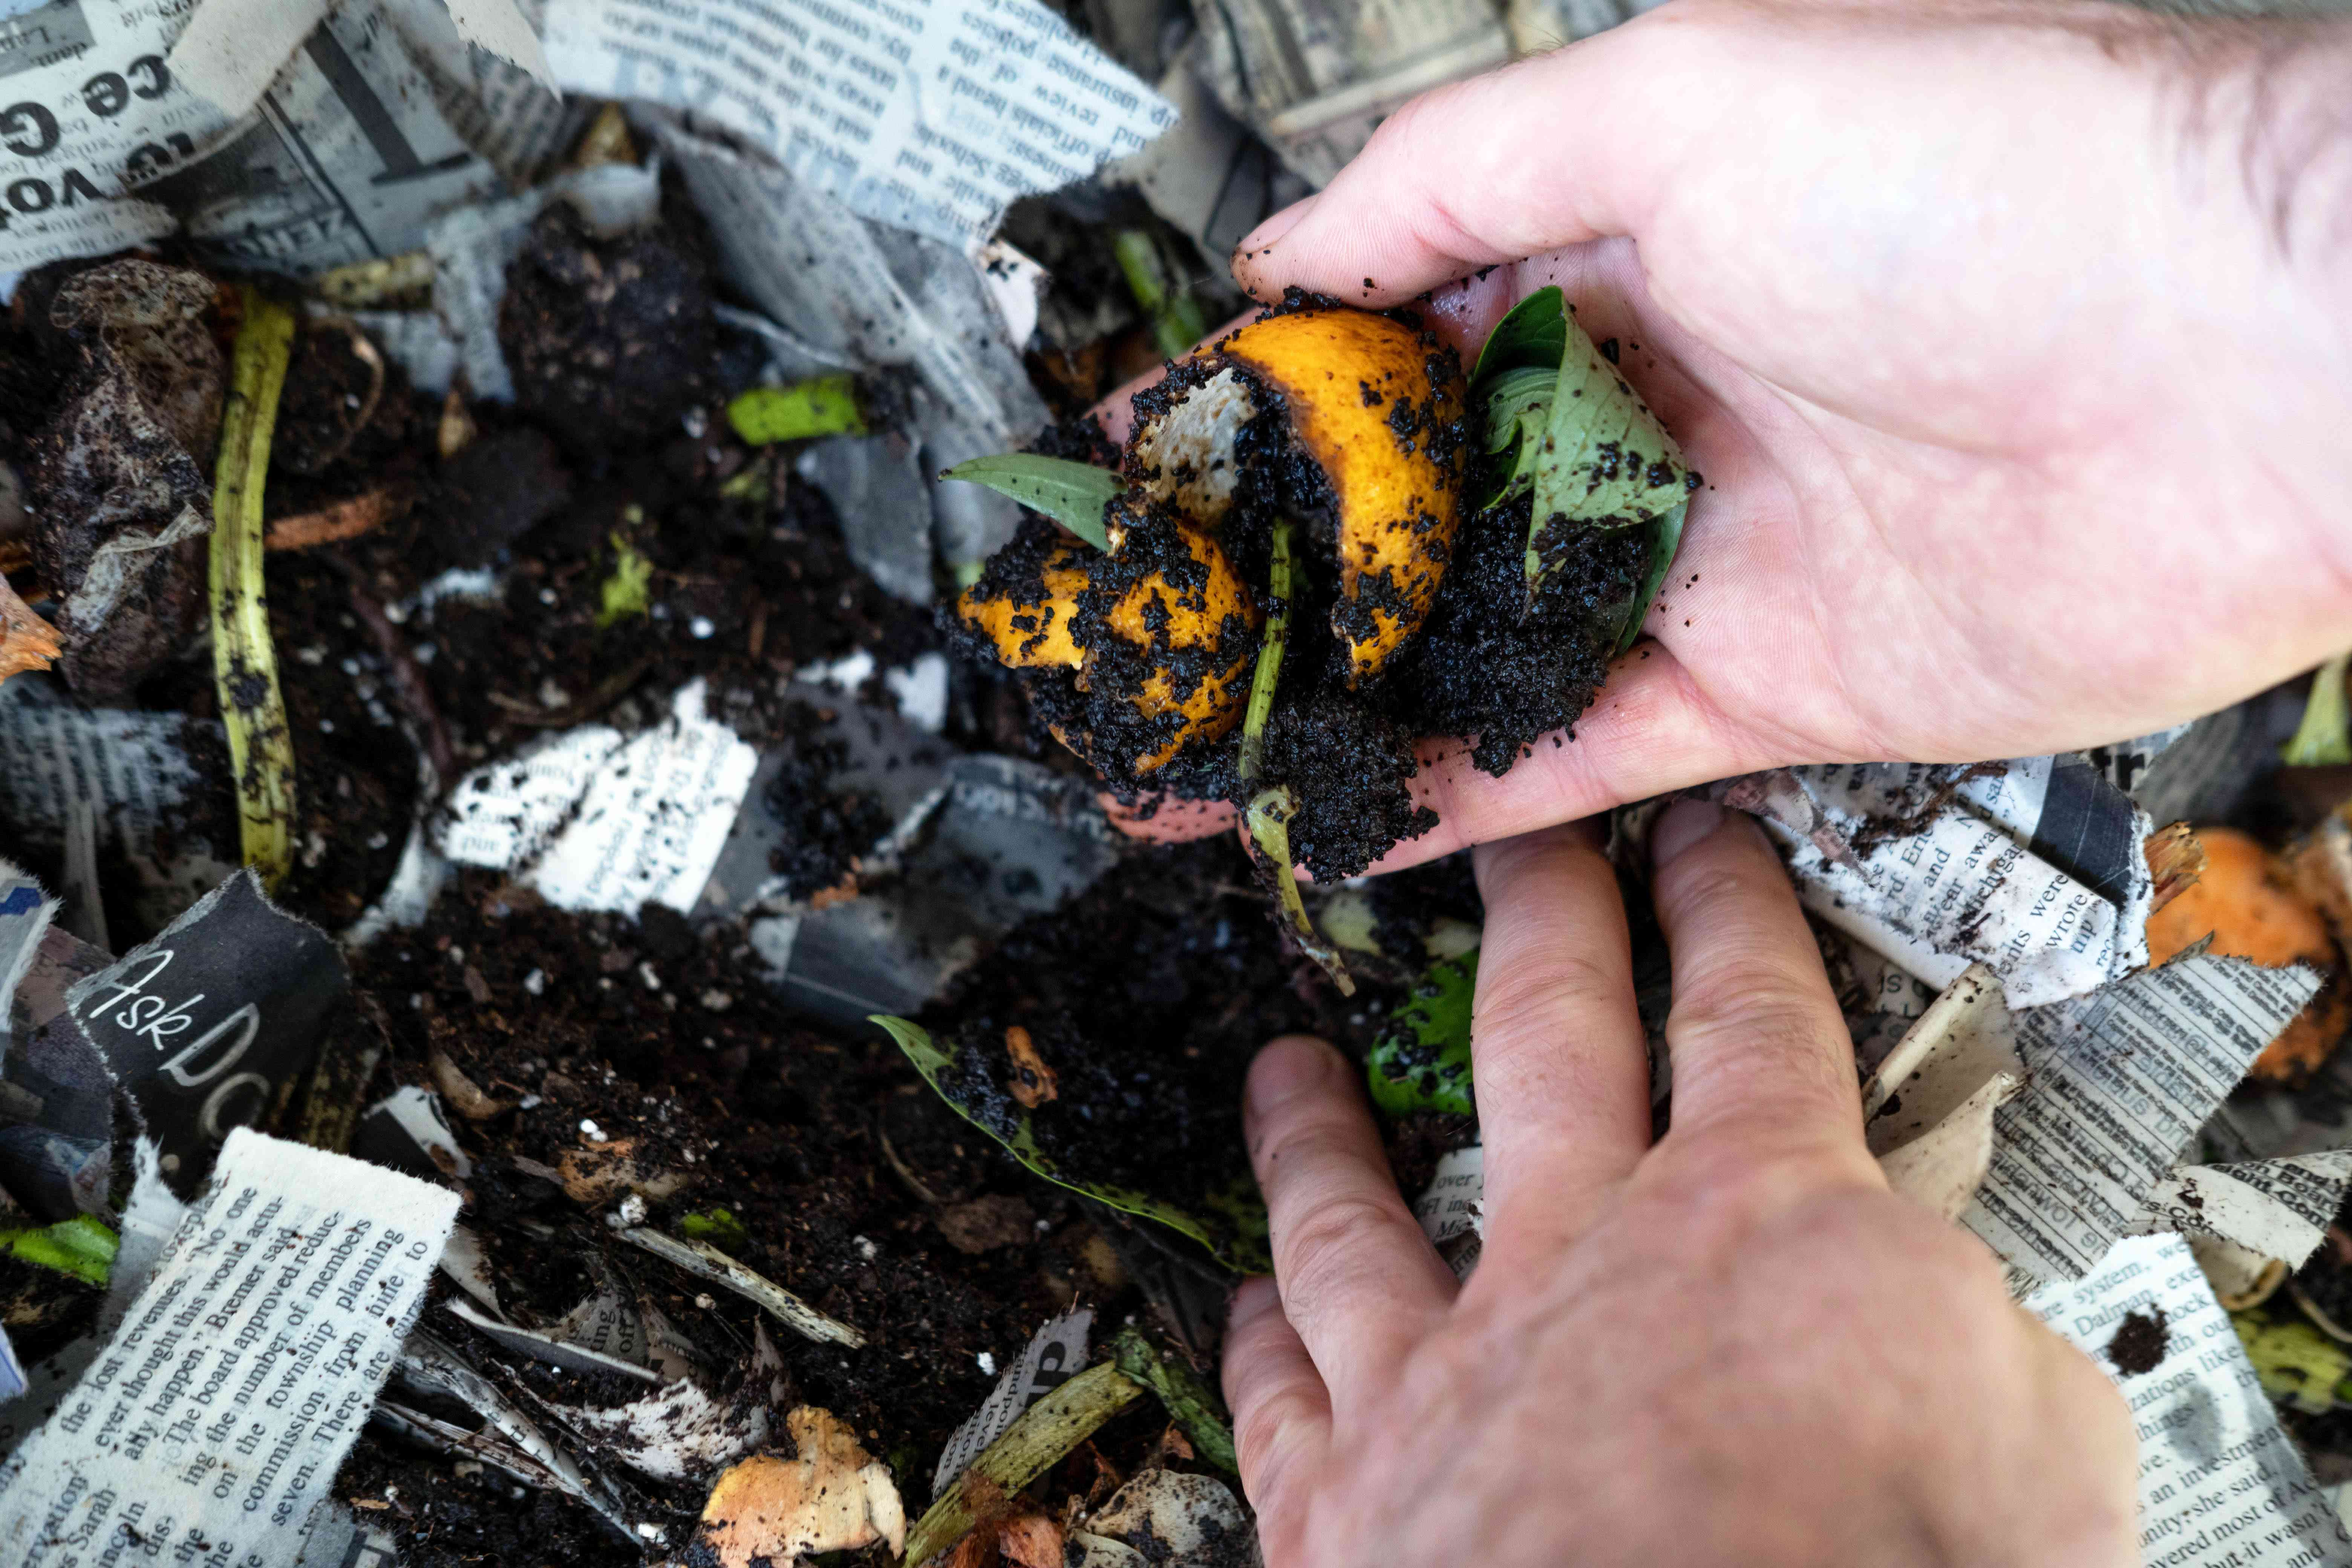 hands fluff the wet newspaper and food scraps to keep vermicomposting system fresh